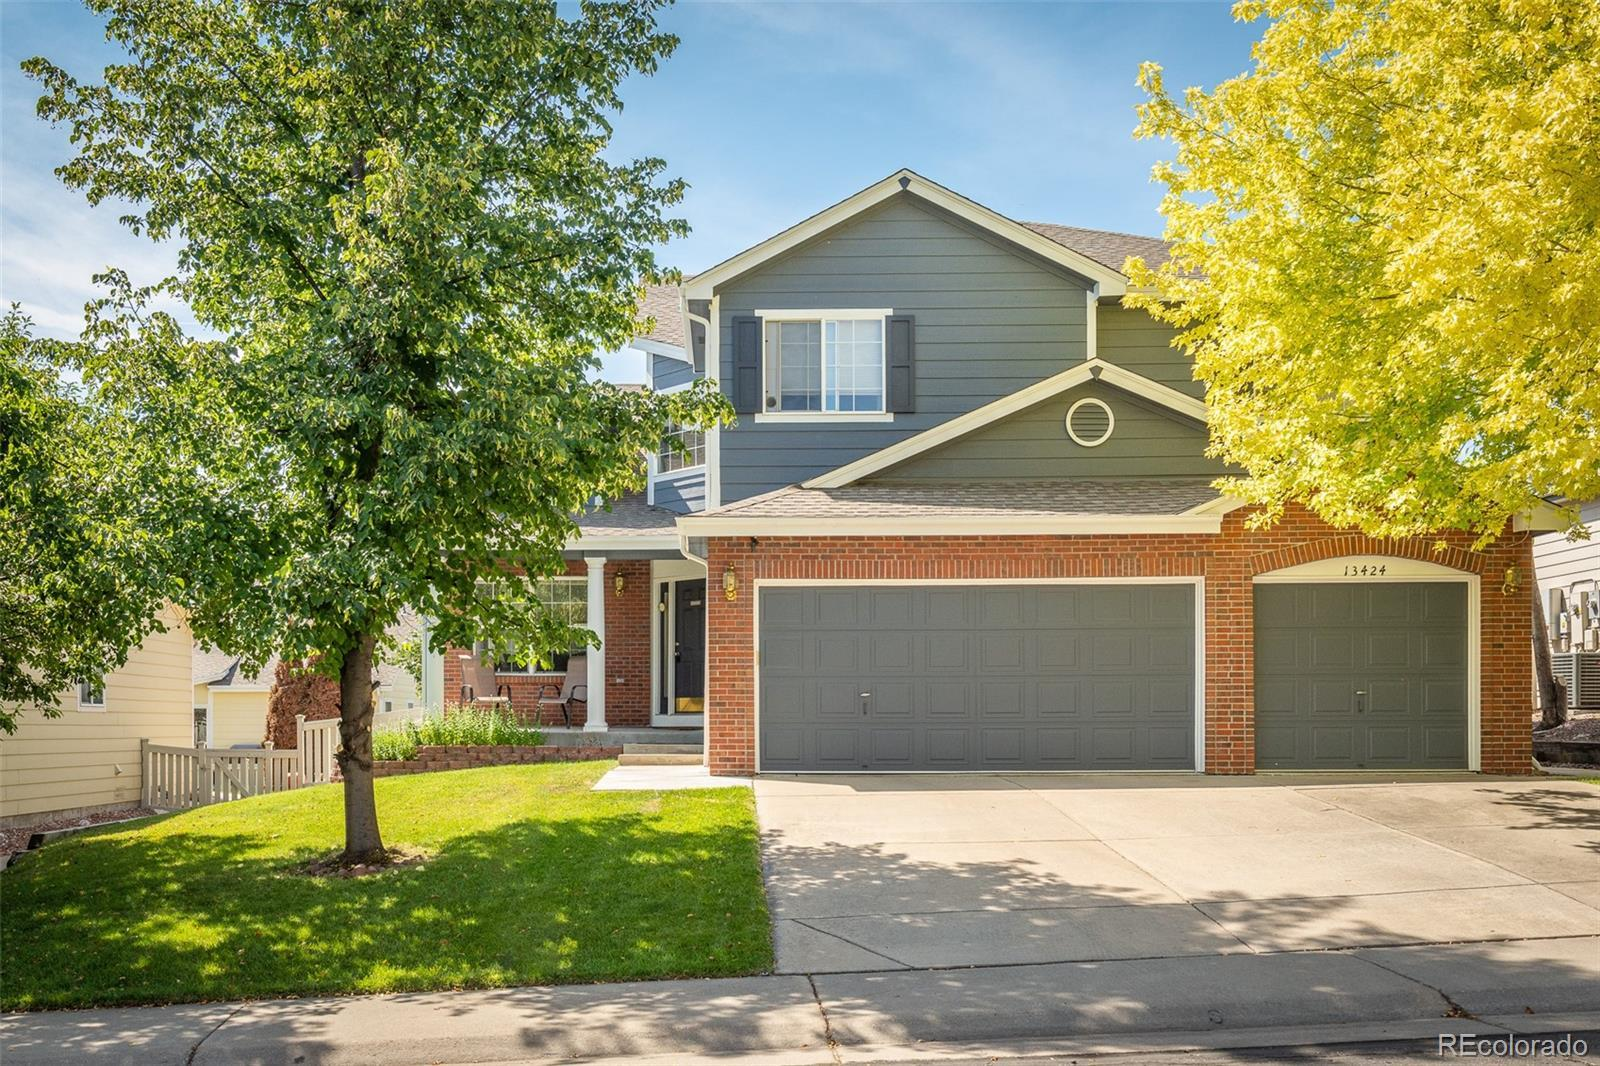 13424 W 62nd Place, Arvada, CO 80004 - #: 8306620